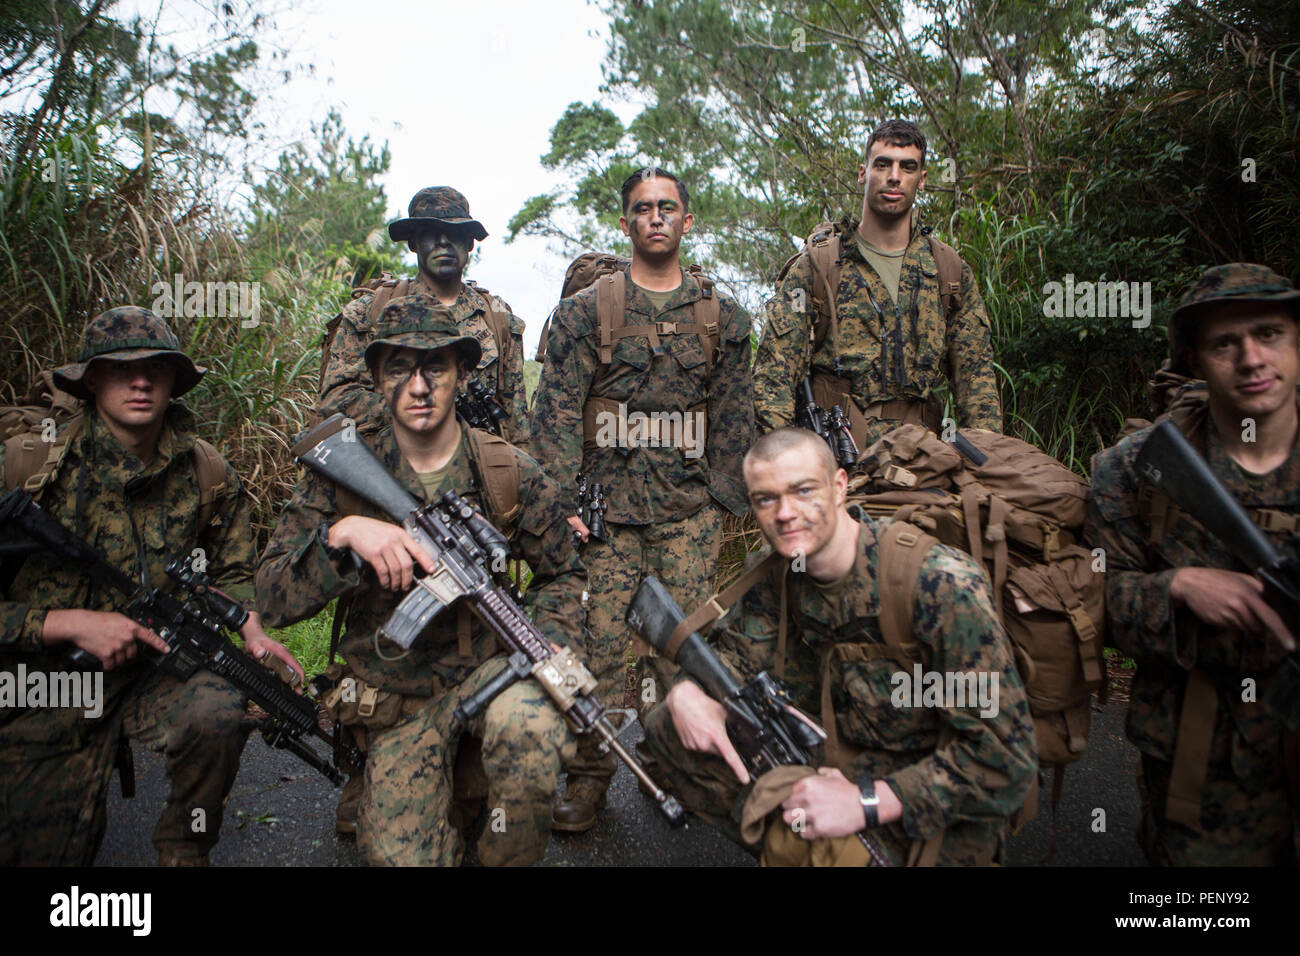 Sgt. Chad Nillo, top row, center, poses for a photo with his squad on Camp Hansen, Okinawa, Japan, Jan. 9, 2016. Sgt. Nillo is currently assigned to Alpha Company, Battalion Landing Team 1st Battalion, 5th Marines, 31st Marine Expeditionary Unit. Nillo has served with Alpha Co., BLT 1/5, 31st MEU, for the past 10 months and has had a great impact on the unit. Nillo is from Newark, California. (U.S. Marine Corps photo by Lance Cpl. Carl King Jr./Released) Stock Photo